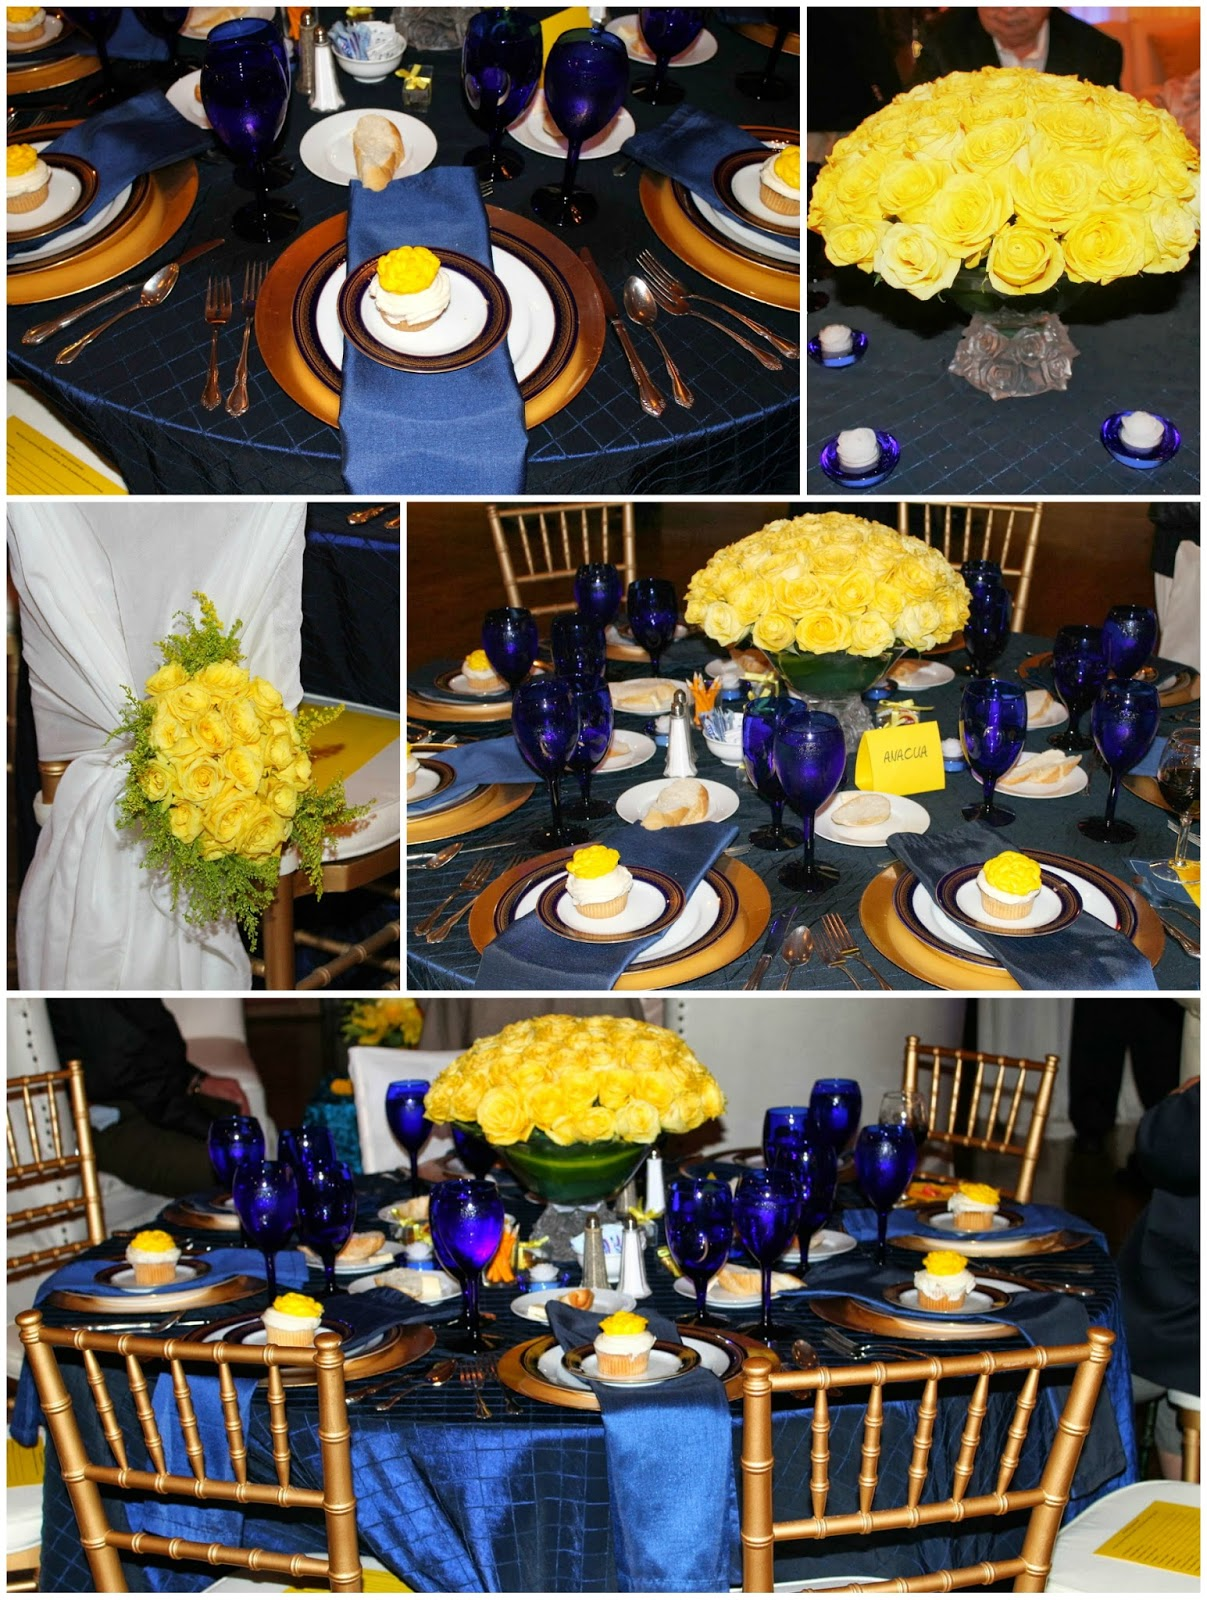 A FEW MORE PICS OF THE TABLE